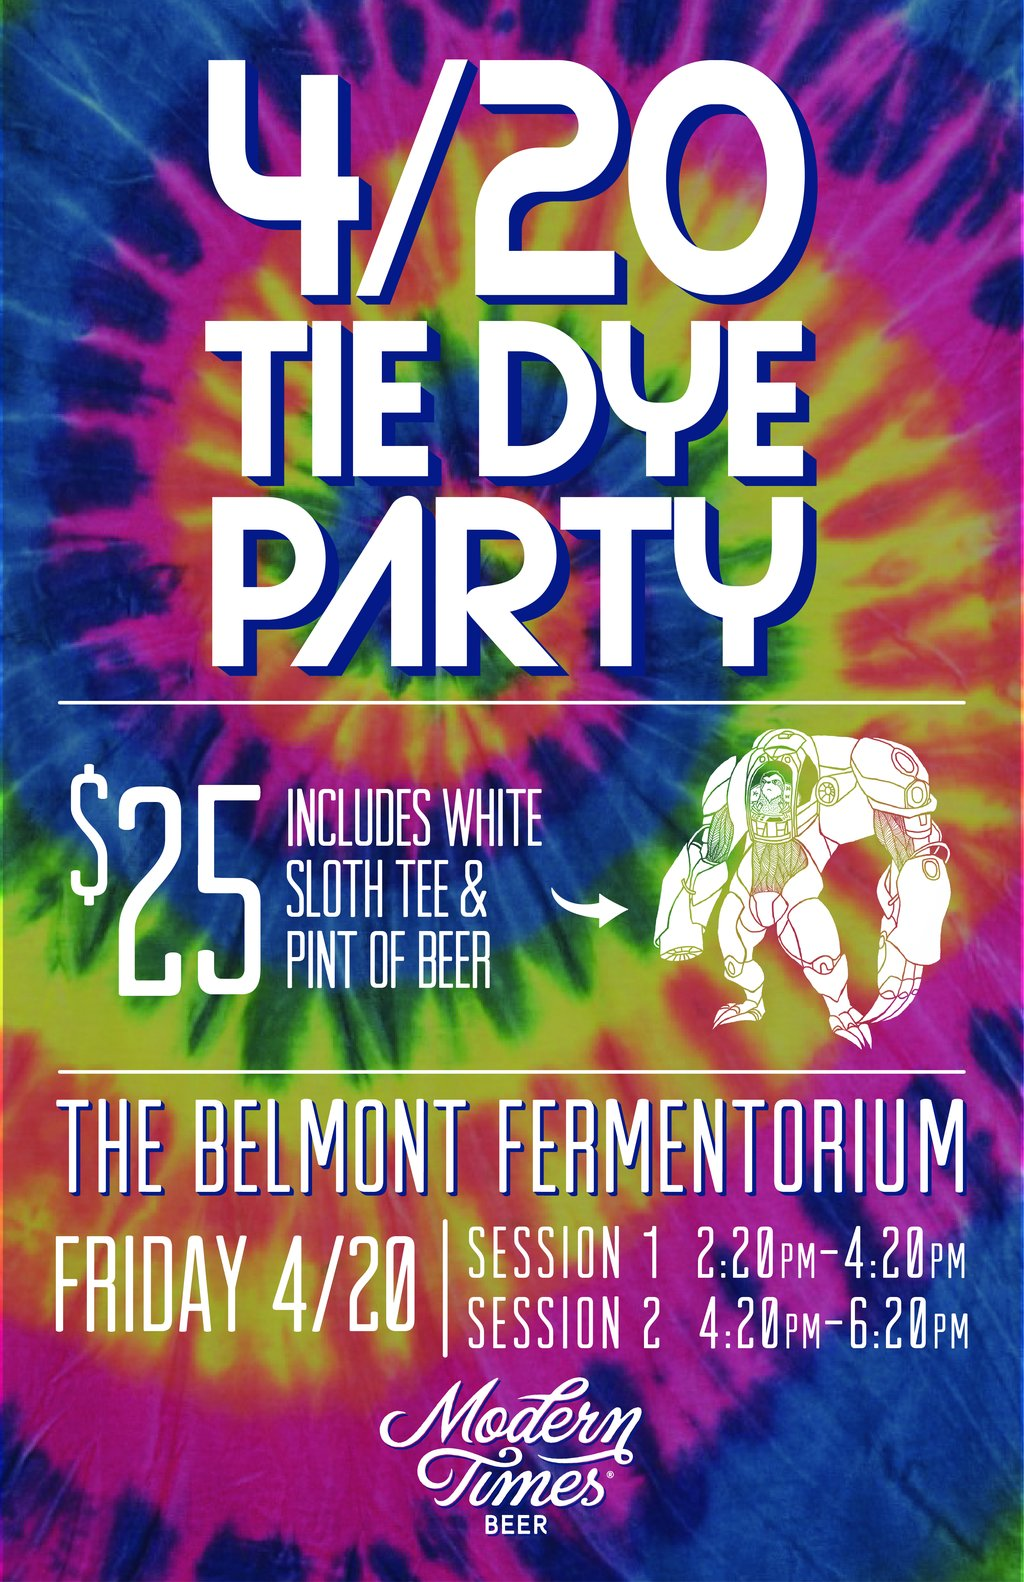 Modern Times 4/20 Tie Dye Party at The Belmont ...